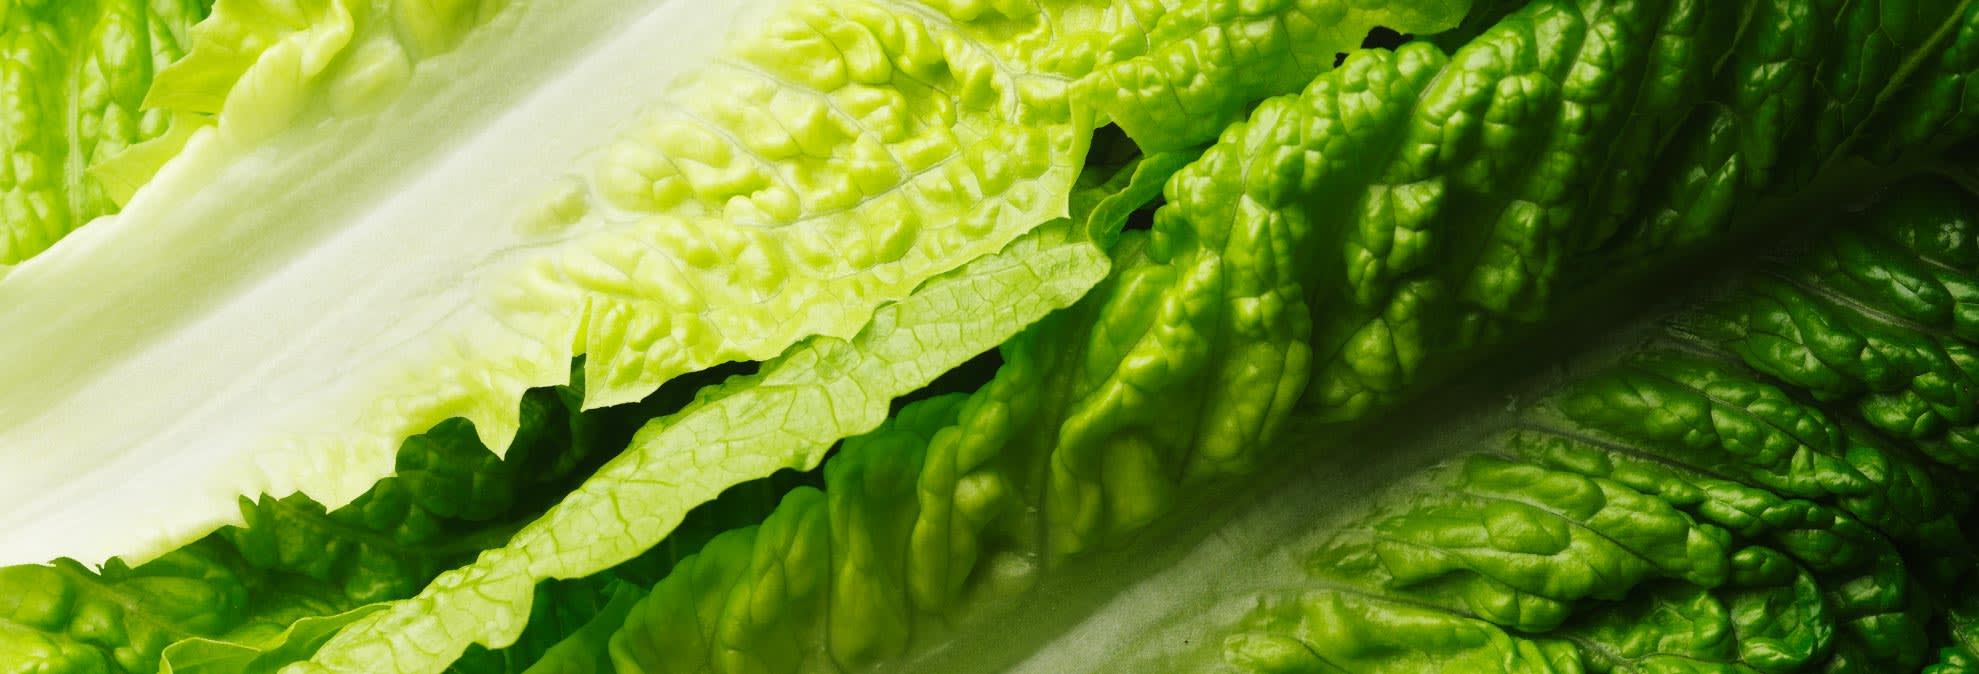 Avoid Romaine Lettuce For Now Consumer Reports Says